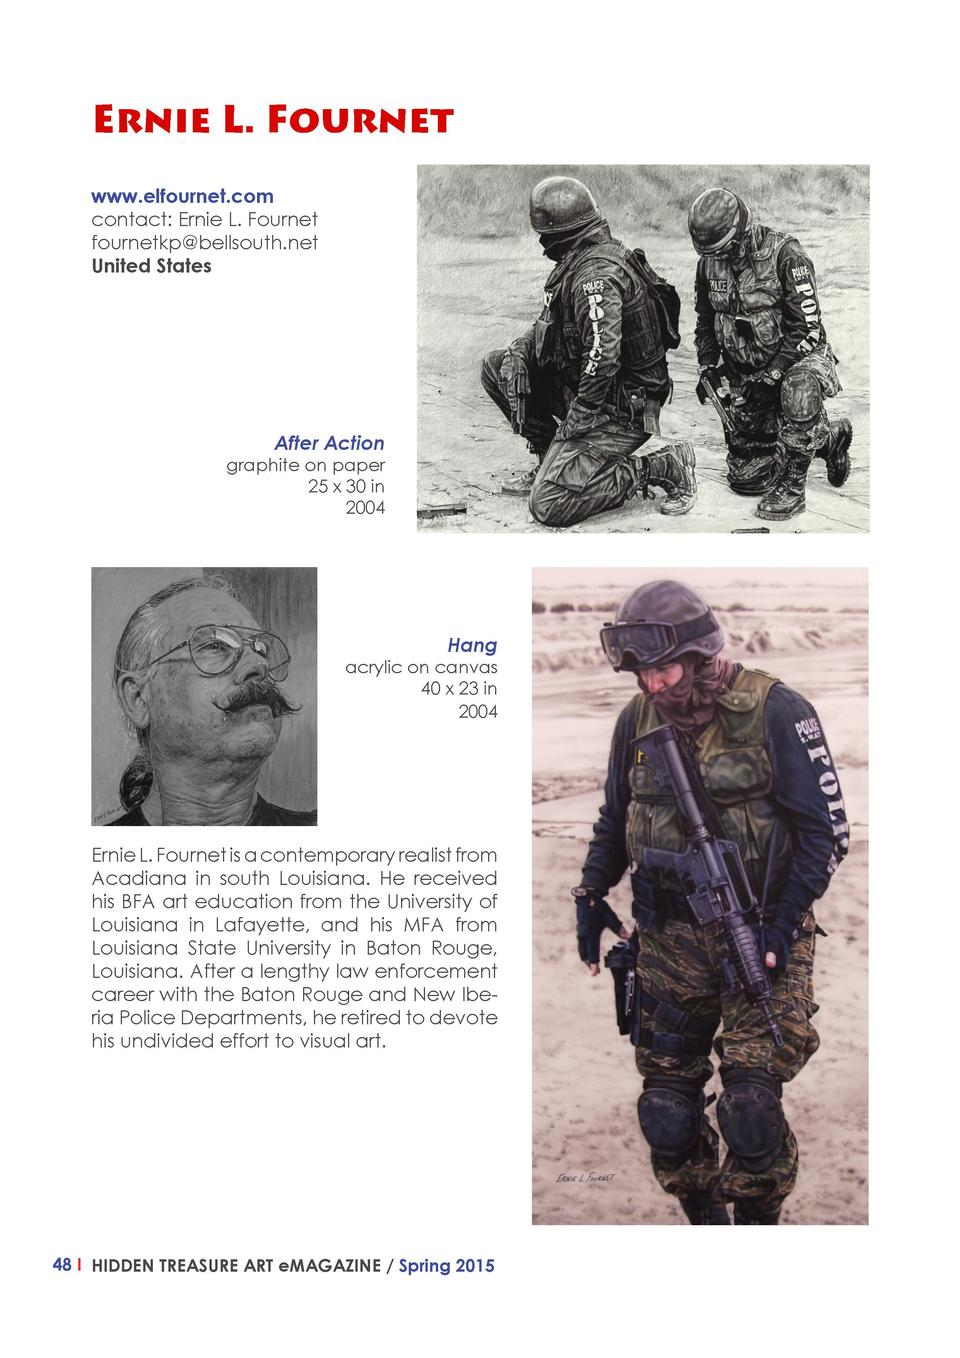 Ernie L. Fournet www.elfournet.com contact  Ernie L. Fournet fournetkp bellsouth.net United States  After Action  graphite...